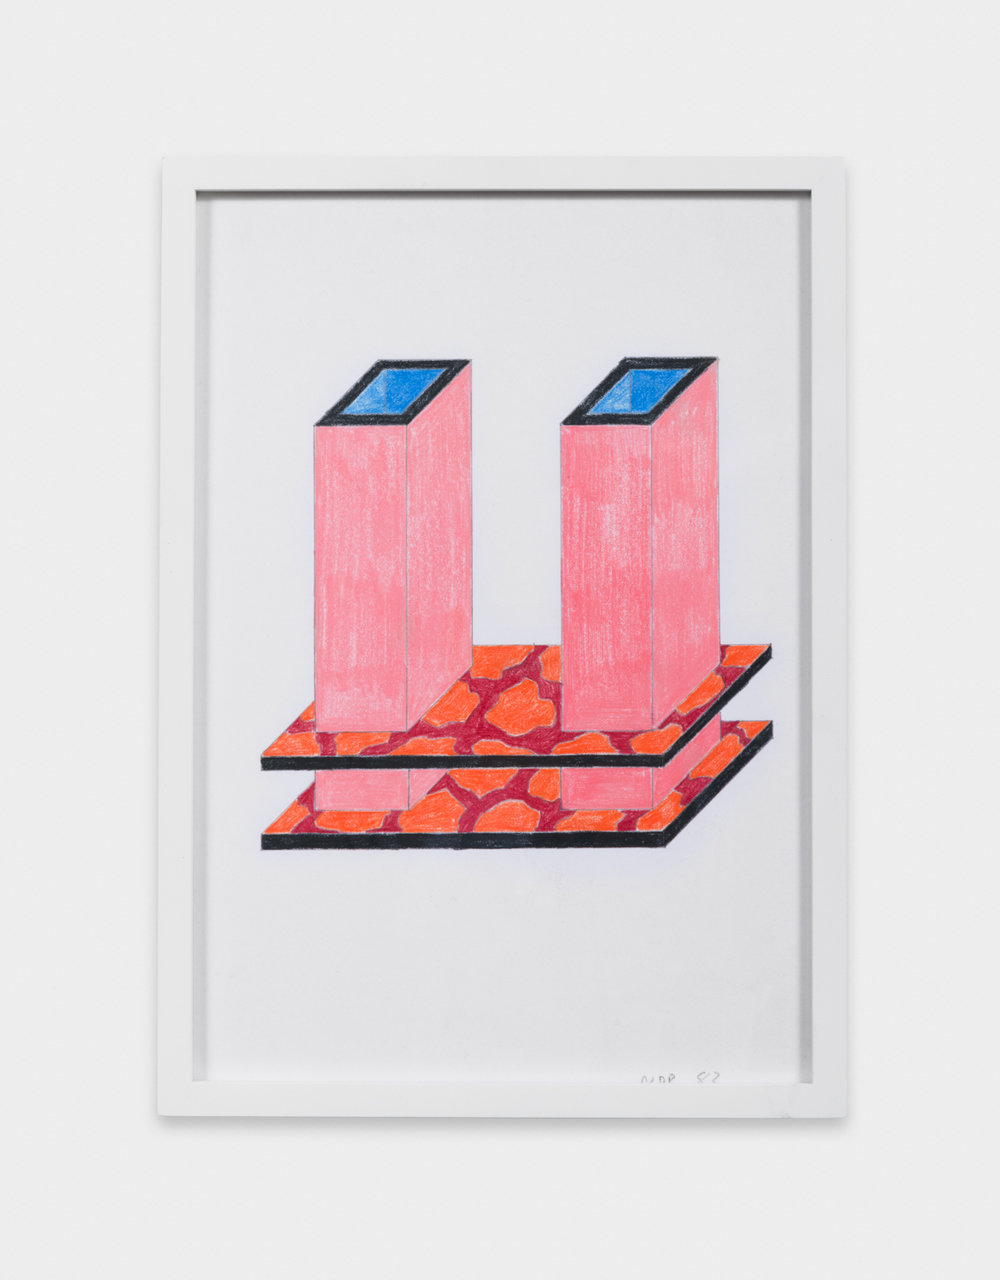 Nathalie Du Pasquier  Project for a vase for two flowers  1983 Color crayon on paper 12 ¼h x 8 ¾w in ND004